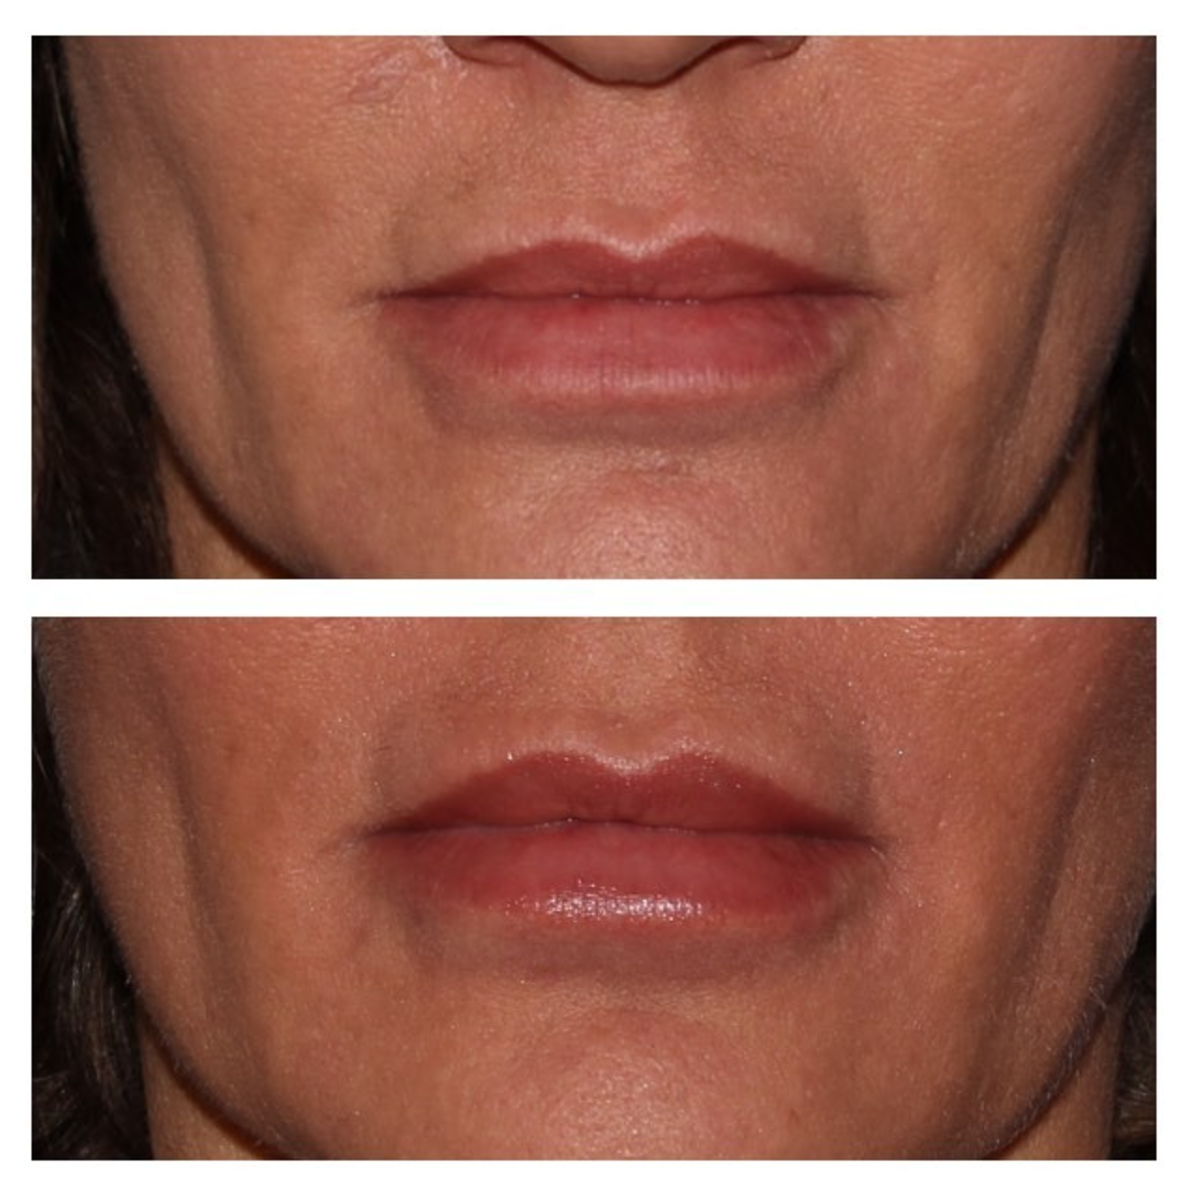 LIpBeforeAfter.png